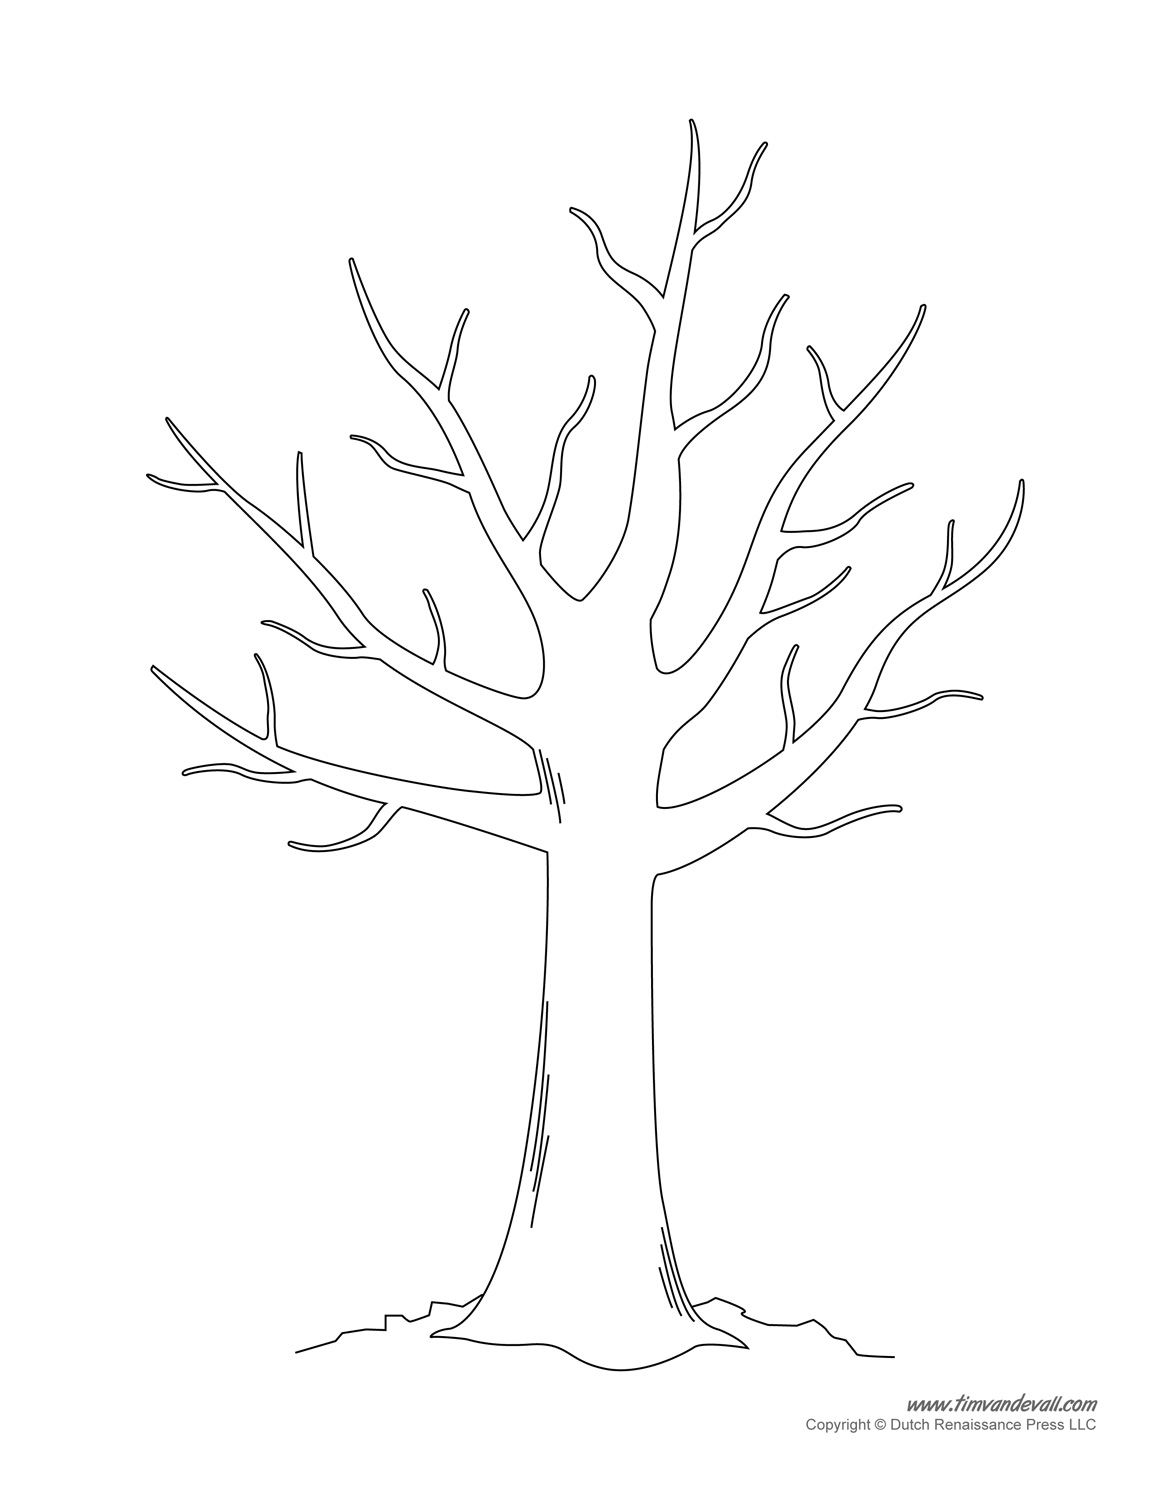 Best family tree coloring pages ideas entry level resume templates family tree drawing easy at getdrawings free for personal use saigontimesfo